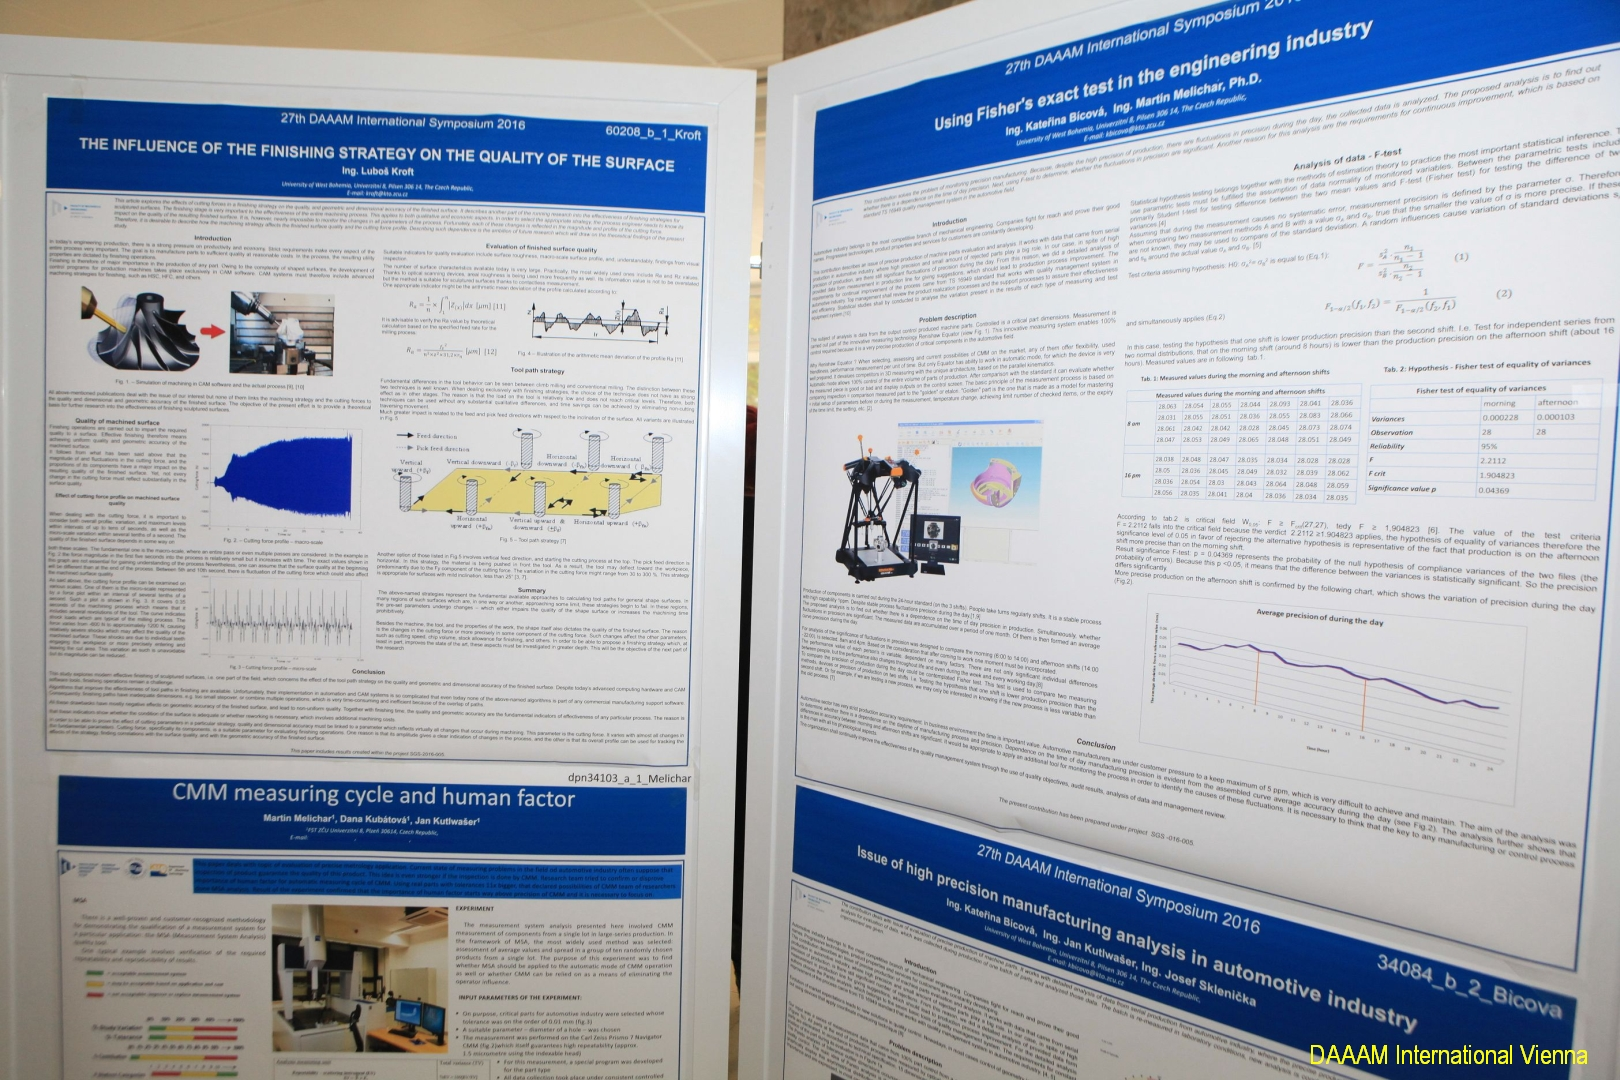 DAAAM_2016_Mostar_07_Posters_and_Presentations_Sessions_017